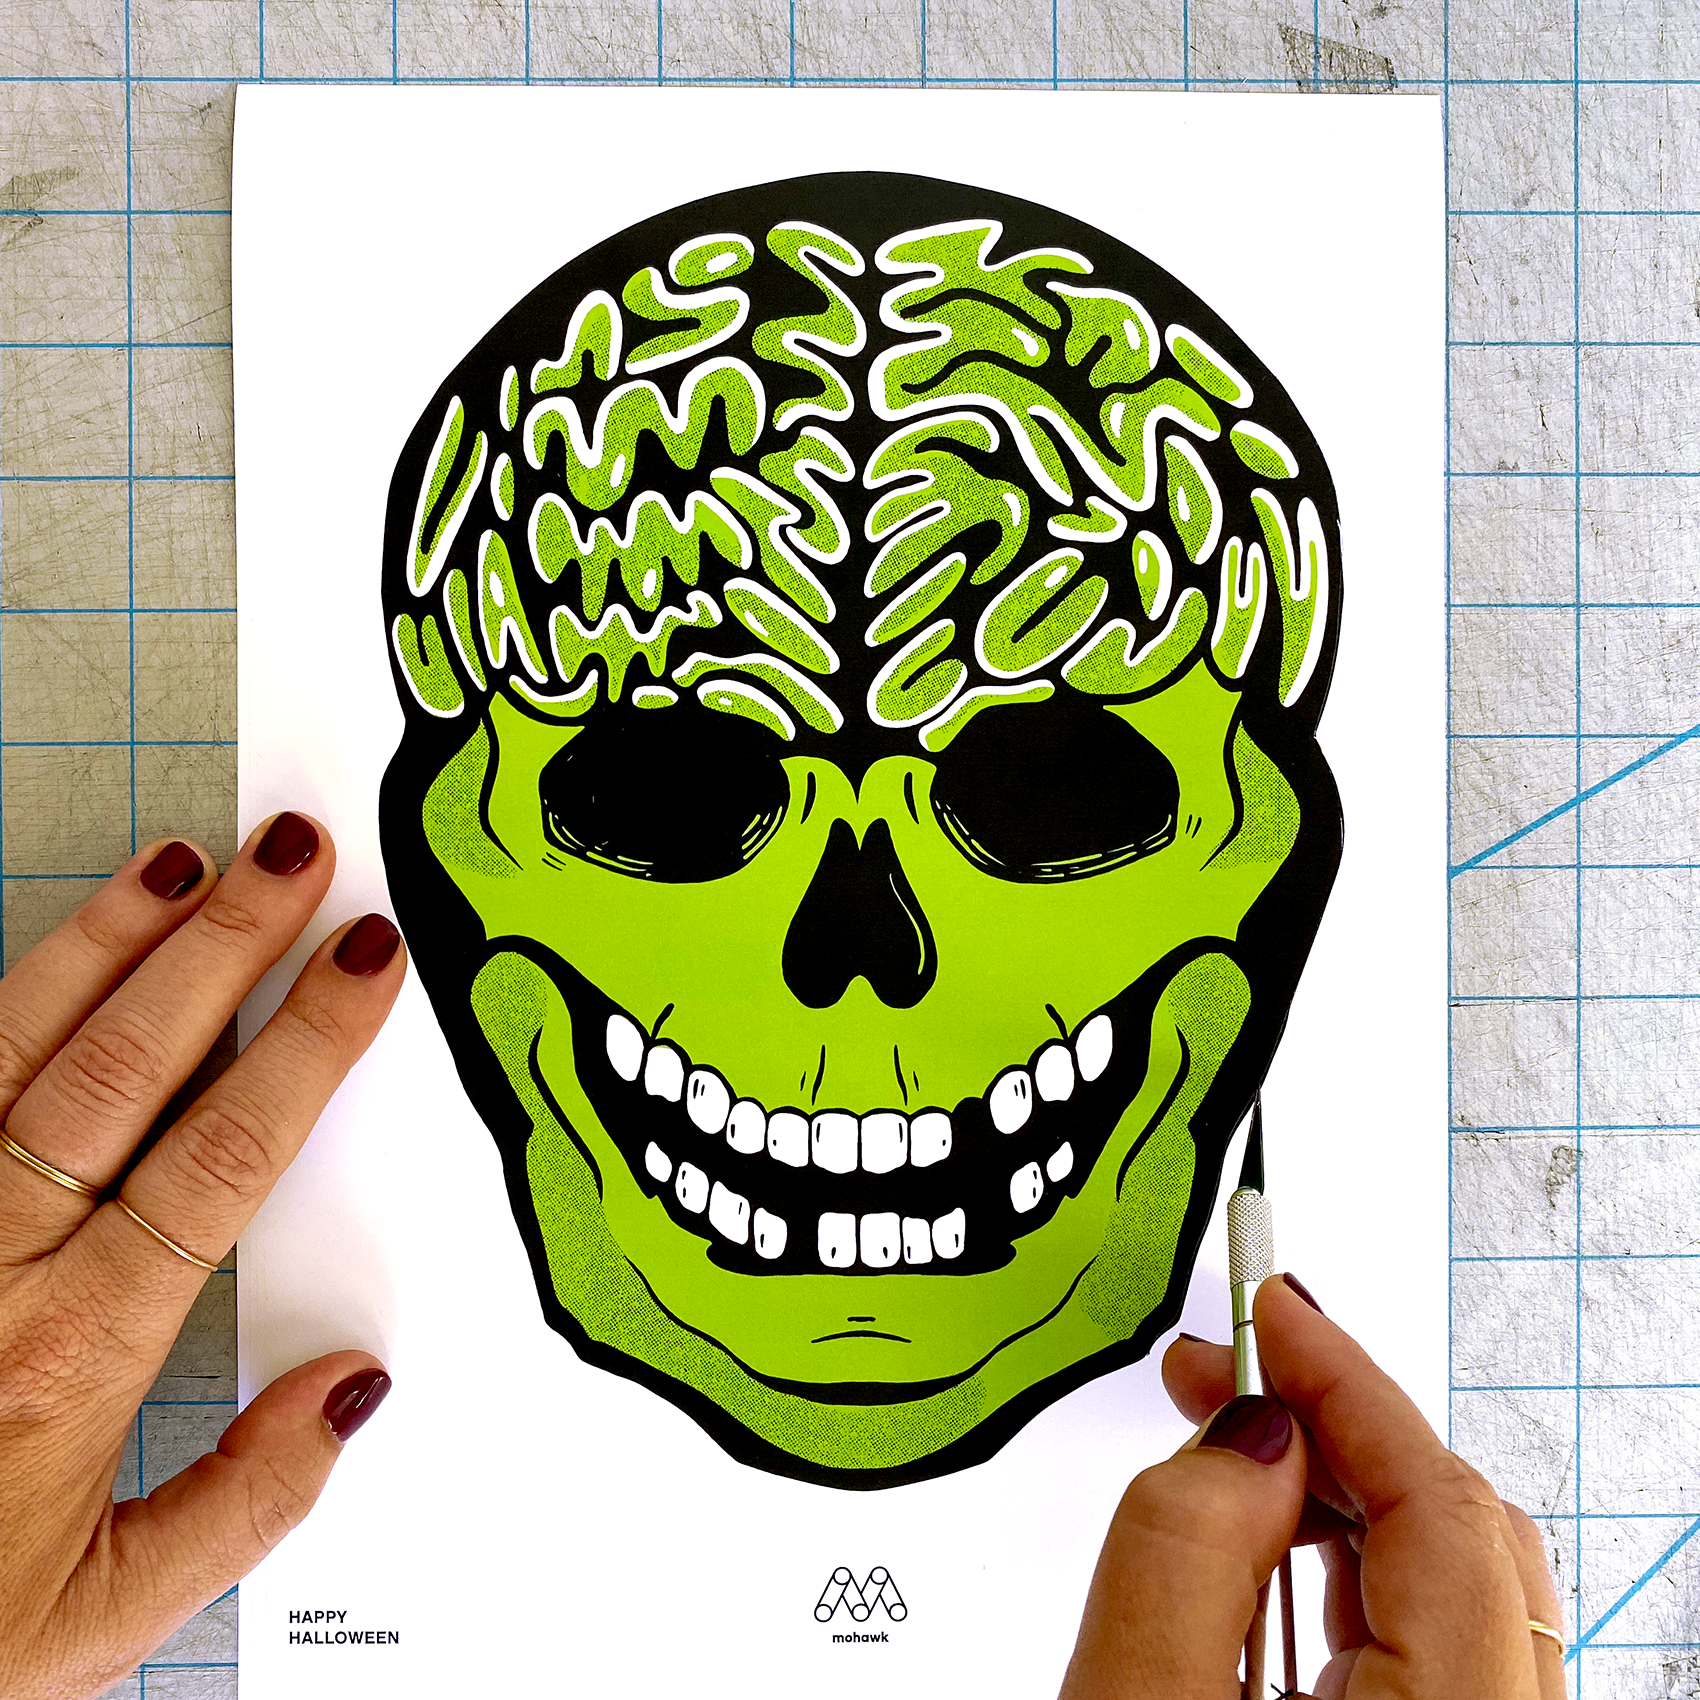 Skull template being cut